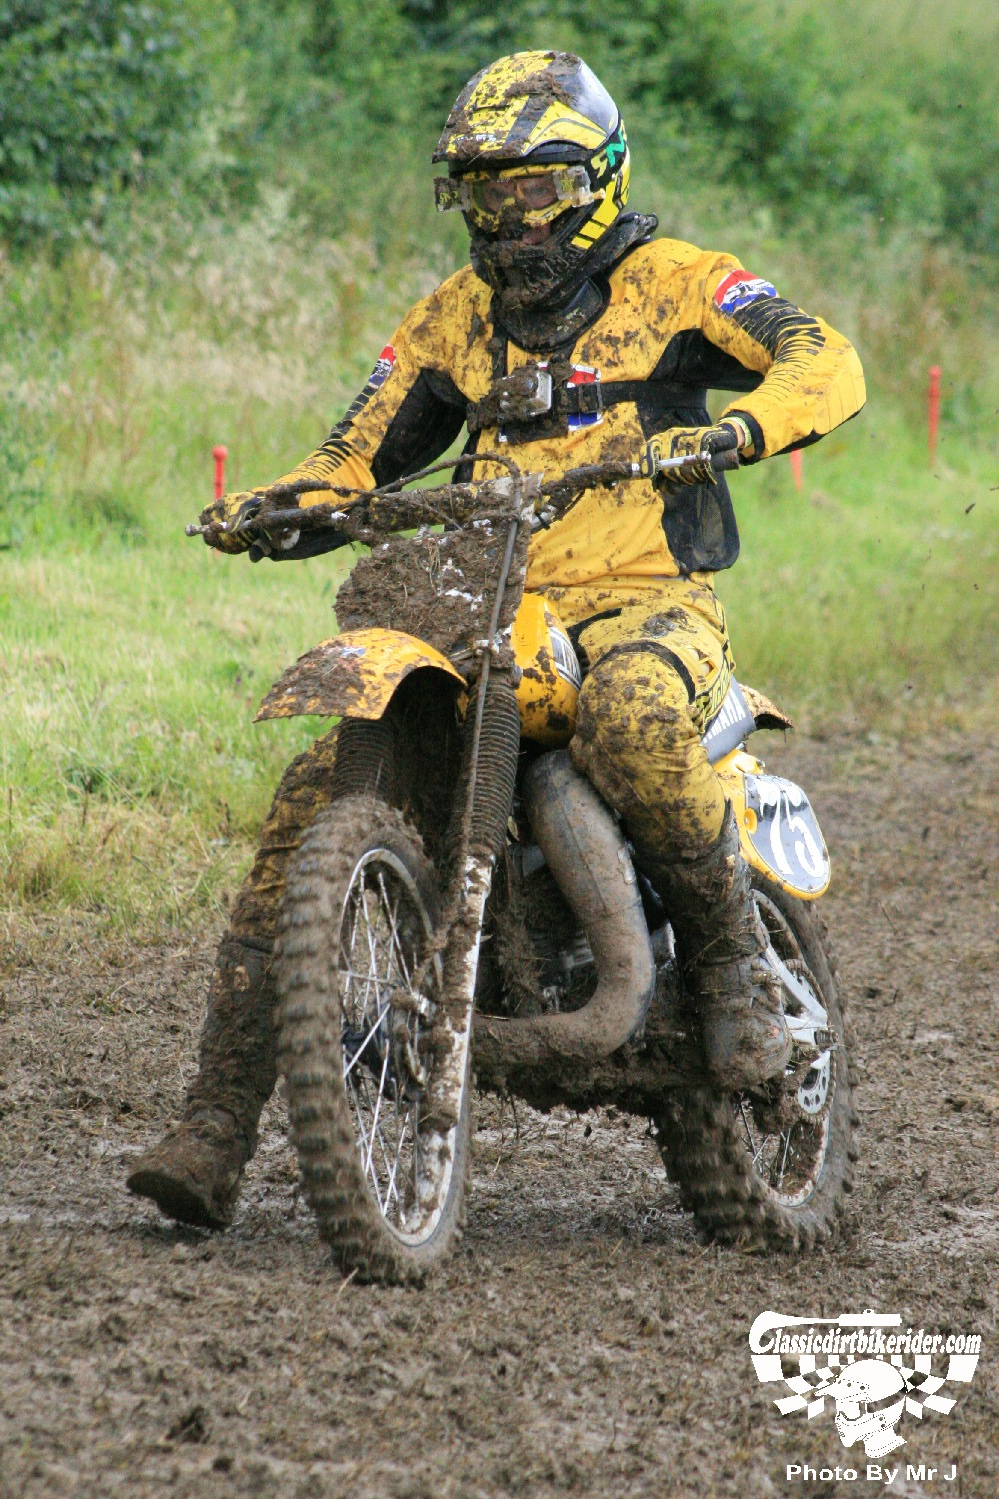 king of the castle 2015 photos Farleigh Castle twinshock motocross classicdirtbikerider.com 121